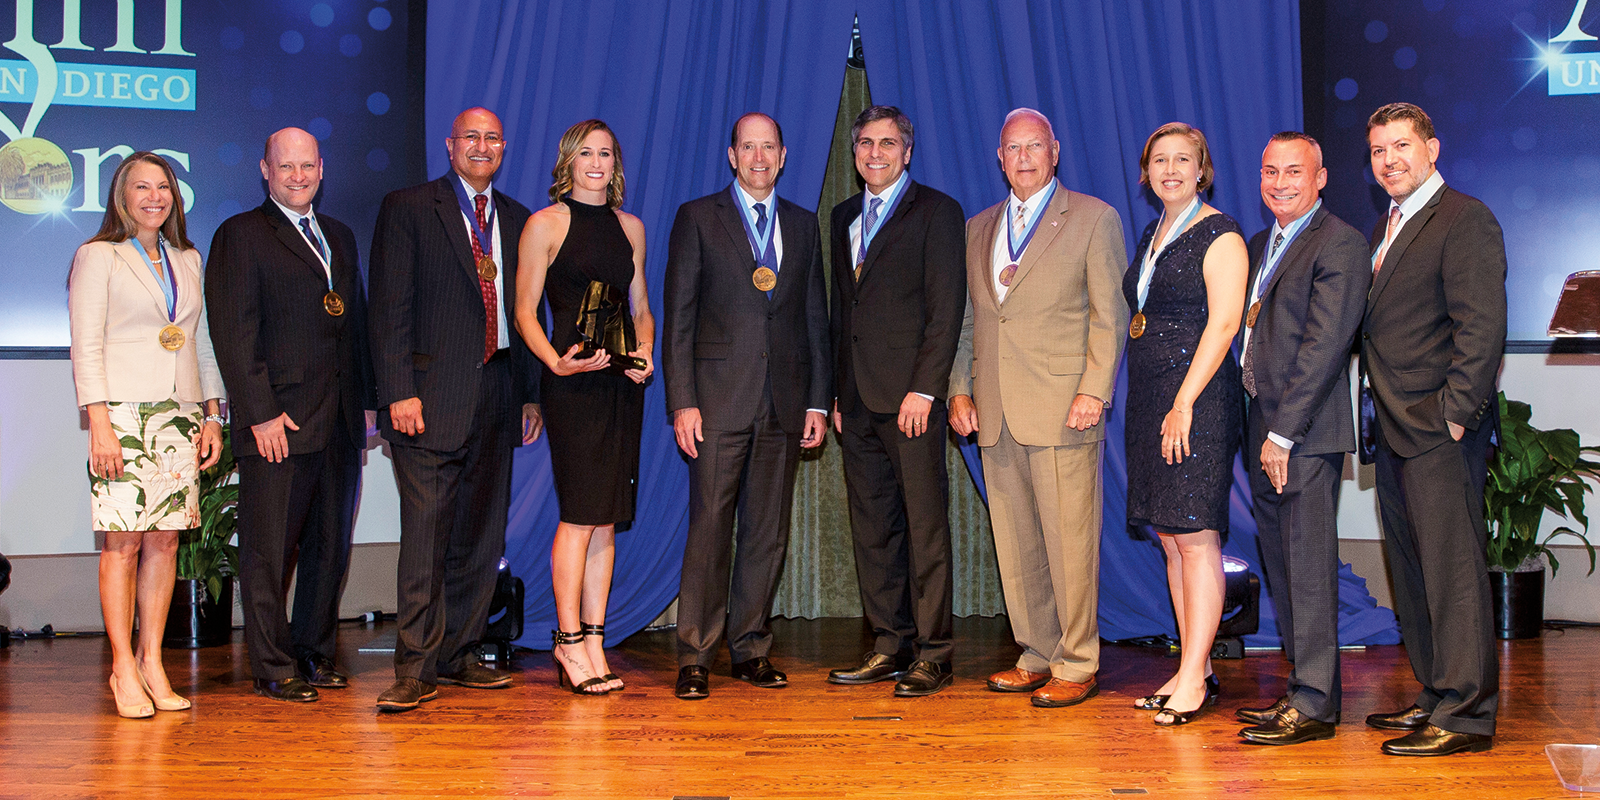 2016 USD Alumni Honorees: Janice Deaton '10 (MA); Andrew Putnam '03 (BS/BA), '03 (BA); Sam K. Attisha '89 (BBA); Leigh Ann (Robinson) Brown '08 (BA); the Honorable Dave Camp '78 (JD); Vincent J. Kasperick '84 (BBA); Maj. Gen. William M. Matz Jr. (Ret.) '73 (MA); Diana Combs Neebe '08 (MEd); Pablo Velez '06 (PhD); Miguel D. Vasquez '94 (BBA).